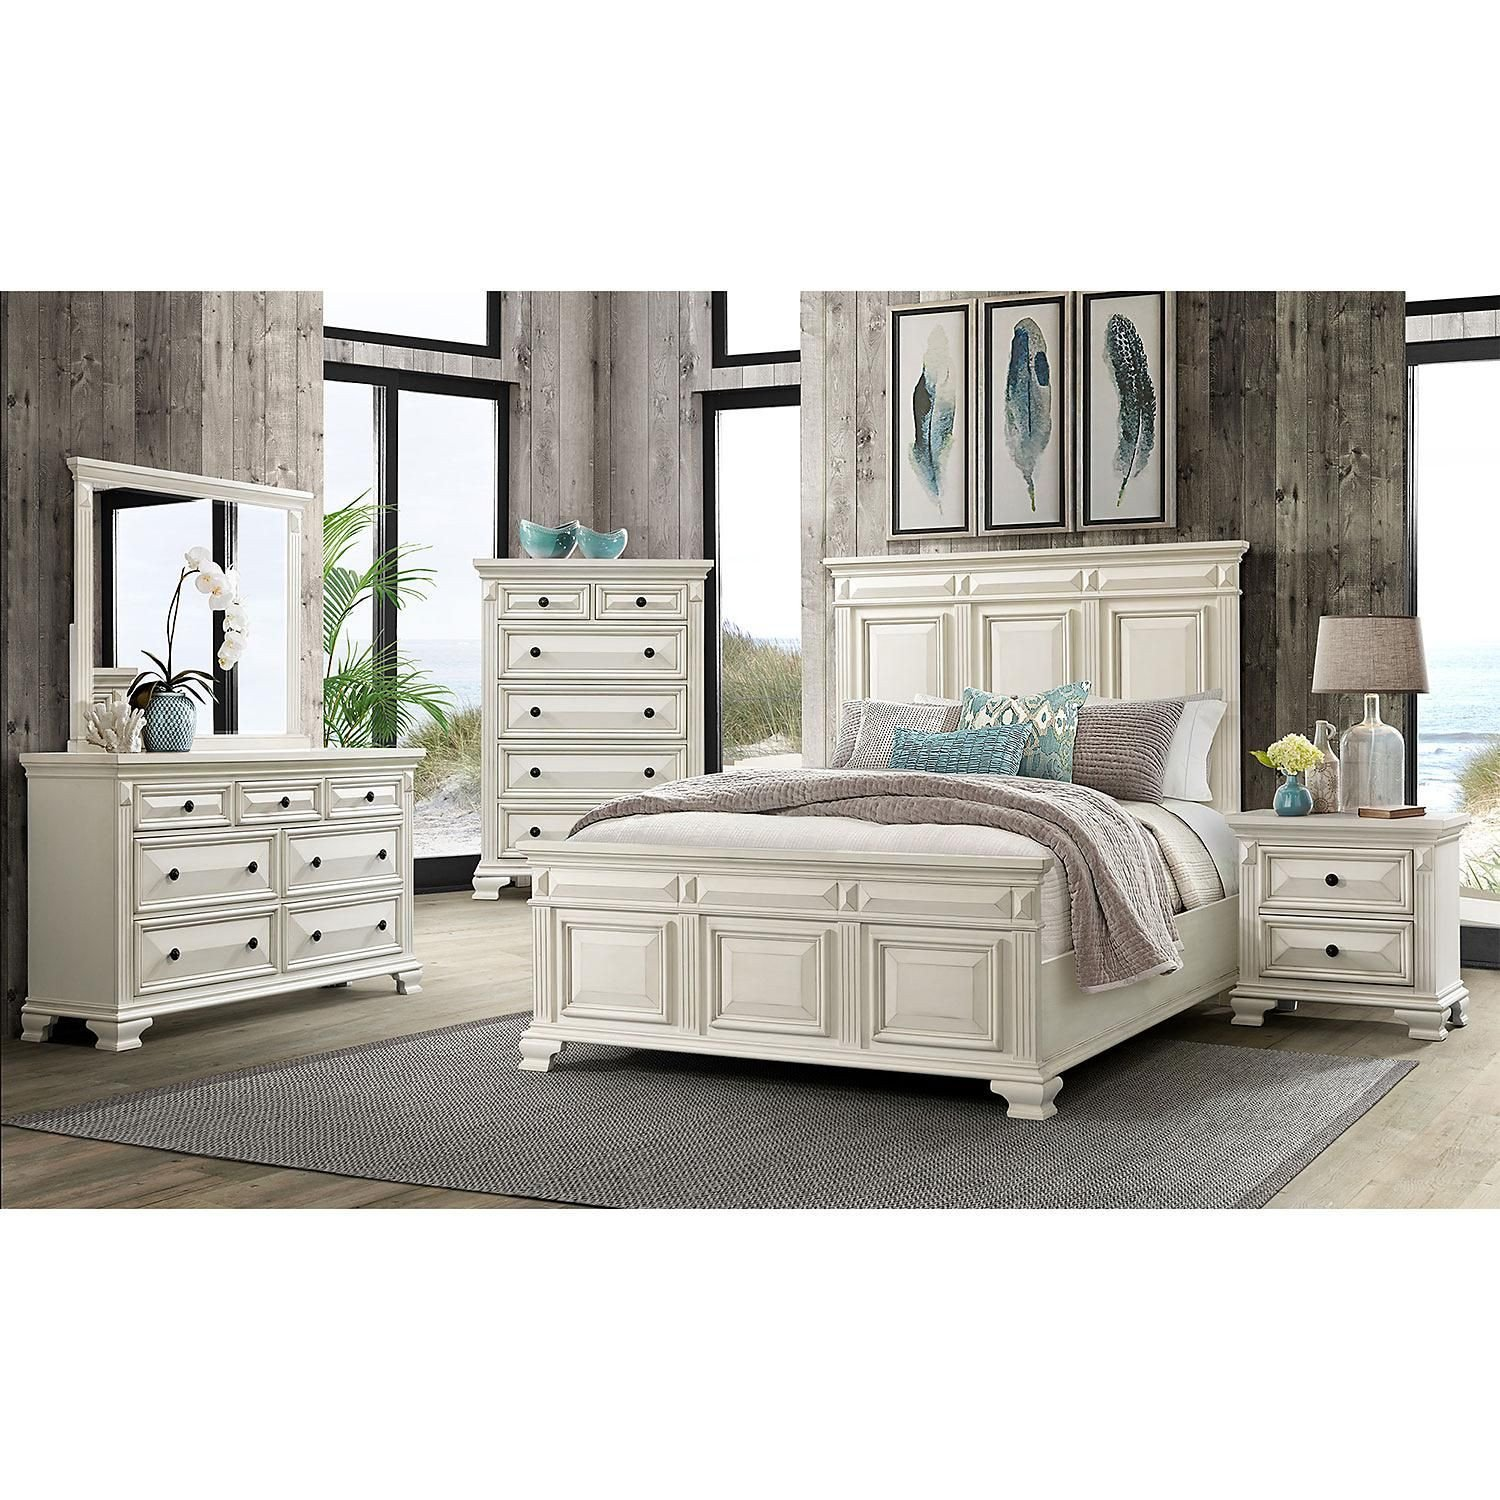 Queen Bedroom Set Ikea Best Of $1599 00 society Den Trent Panel 6 Piece King Bedroom Set